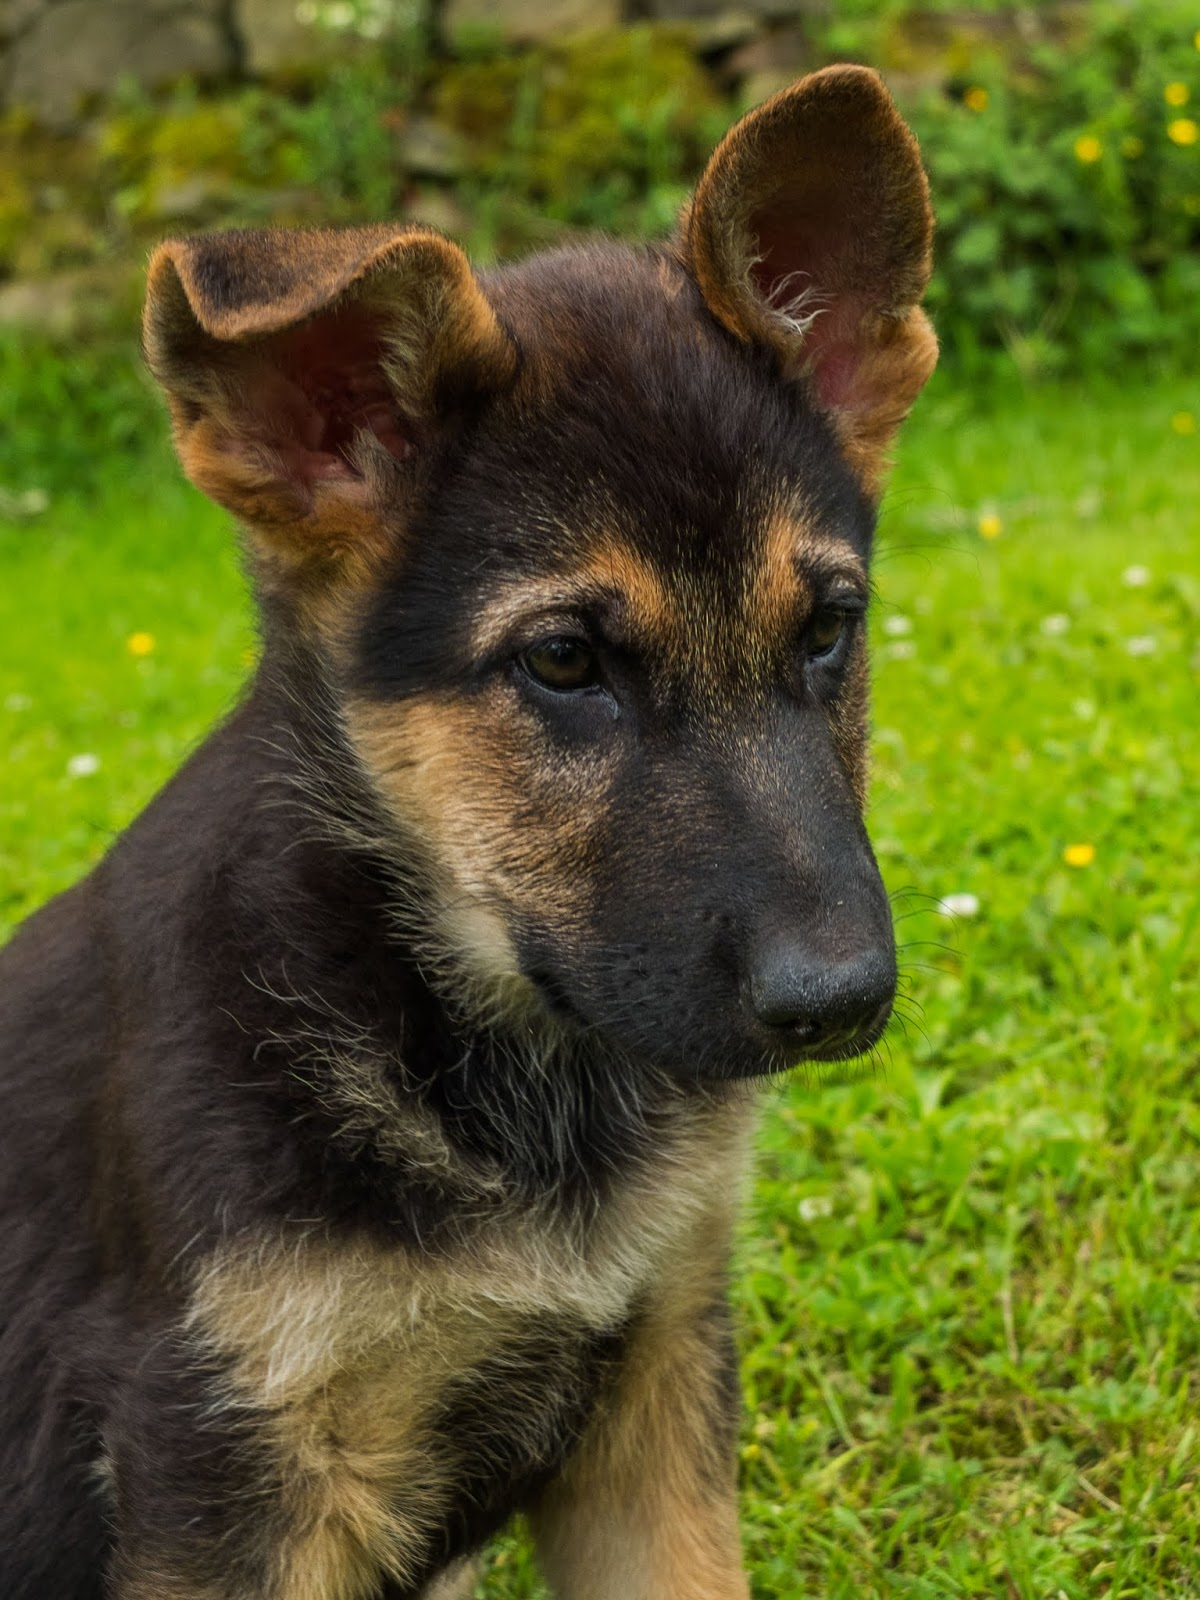 A two month German Shepherd puppy sitting in the grass with one ear up